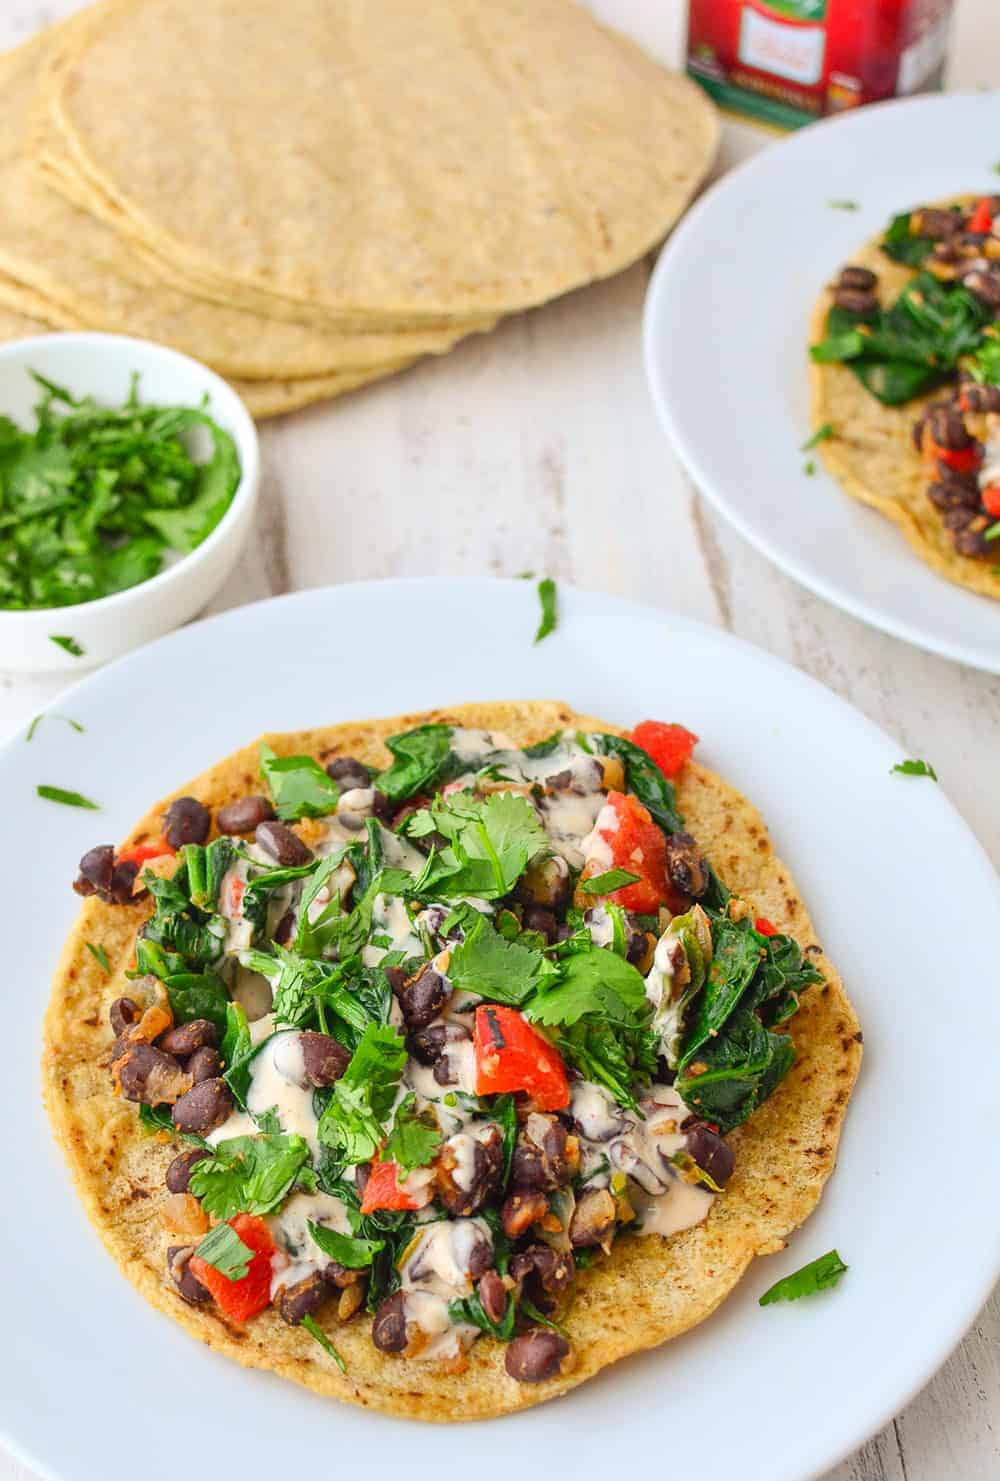 Smoky Black Bean Tostadas! Black bean and spinach filling topped with a smoky paprika sauce. Vegan and gluten-free.| www.delishknowledge.com